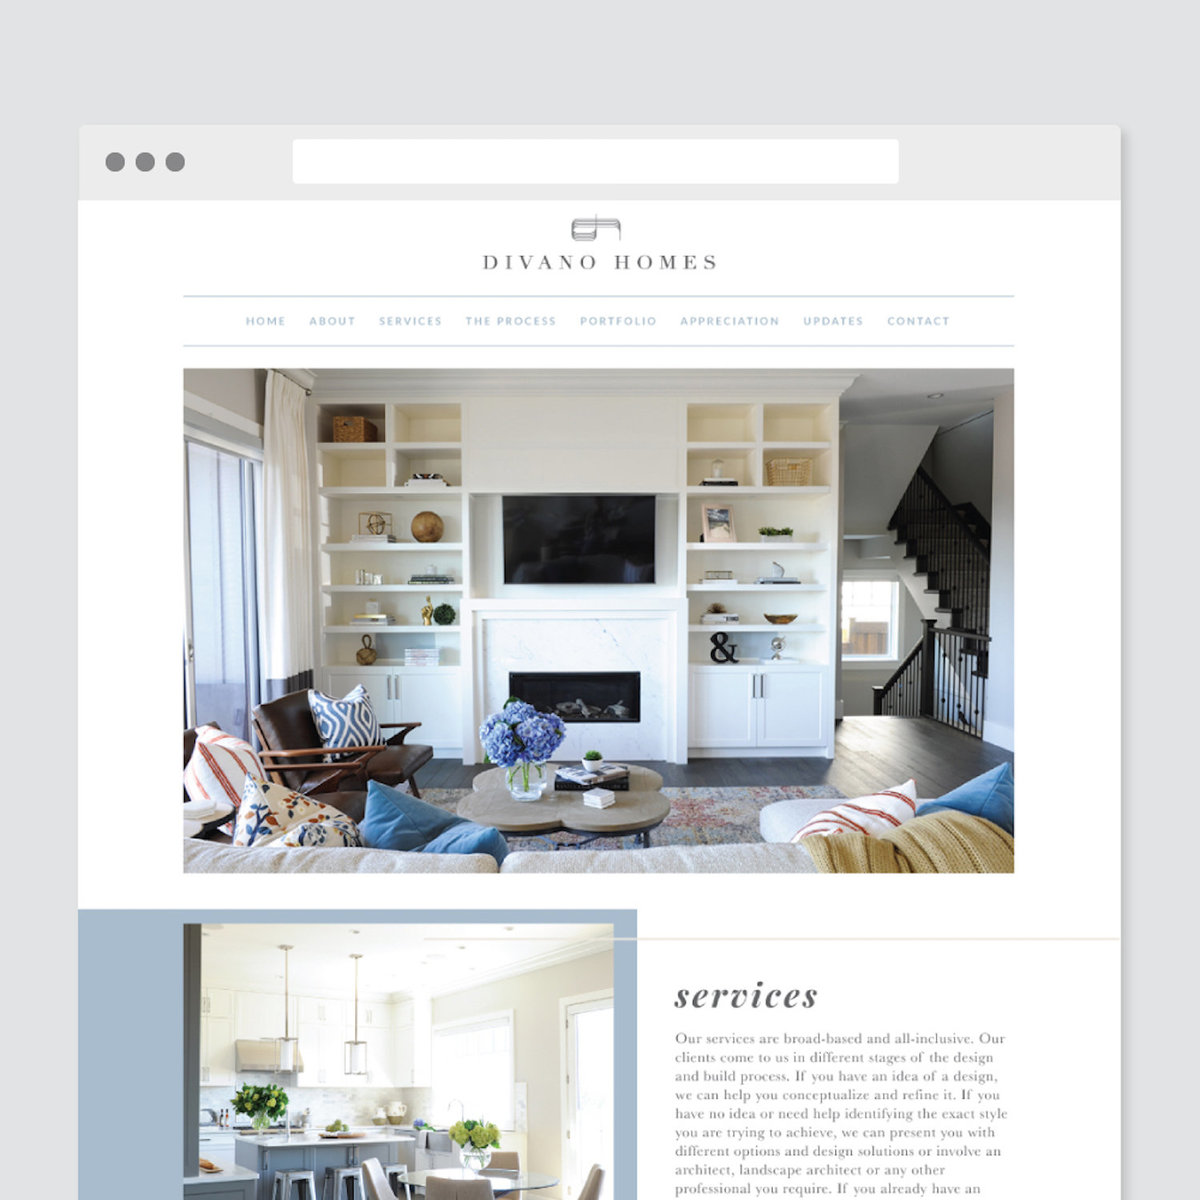 Divano-Homes-Website